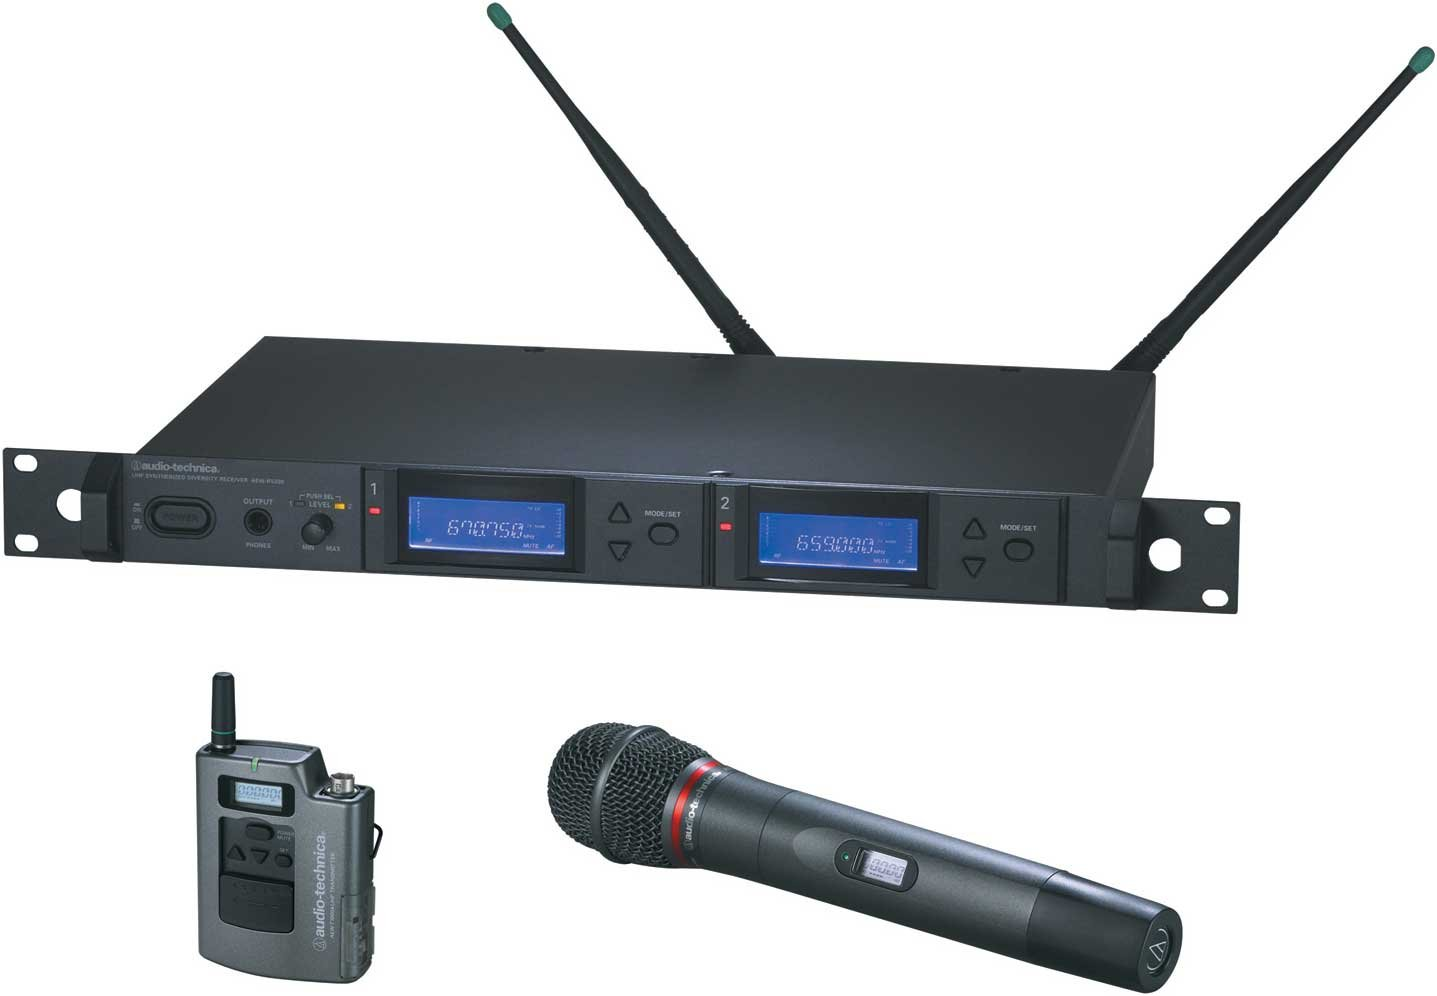 Dual Wireless Microphone System with Bodypack Transmitter & AEW-T6100a Hypercardioid Dynamic Mic/Transmitter, UHF Band C: 541.500 MHz to 566.375 MHz